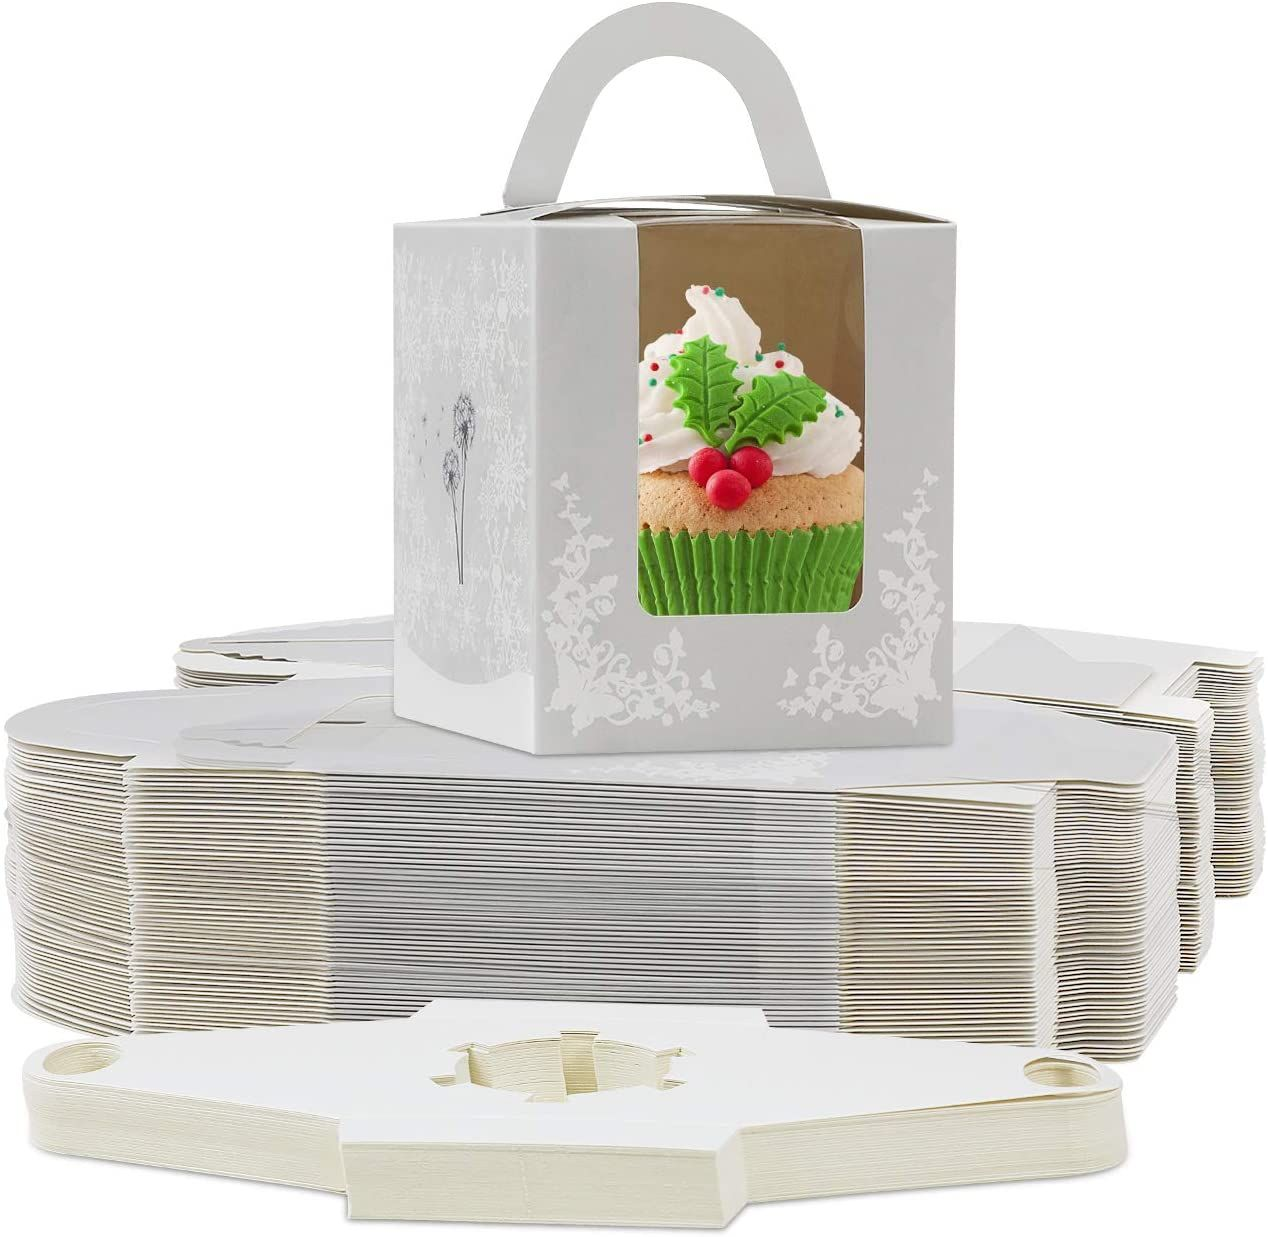 Art Paper folding packaging Box with Handle for Christmas Holiday